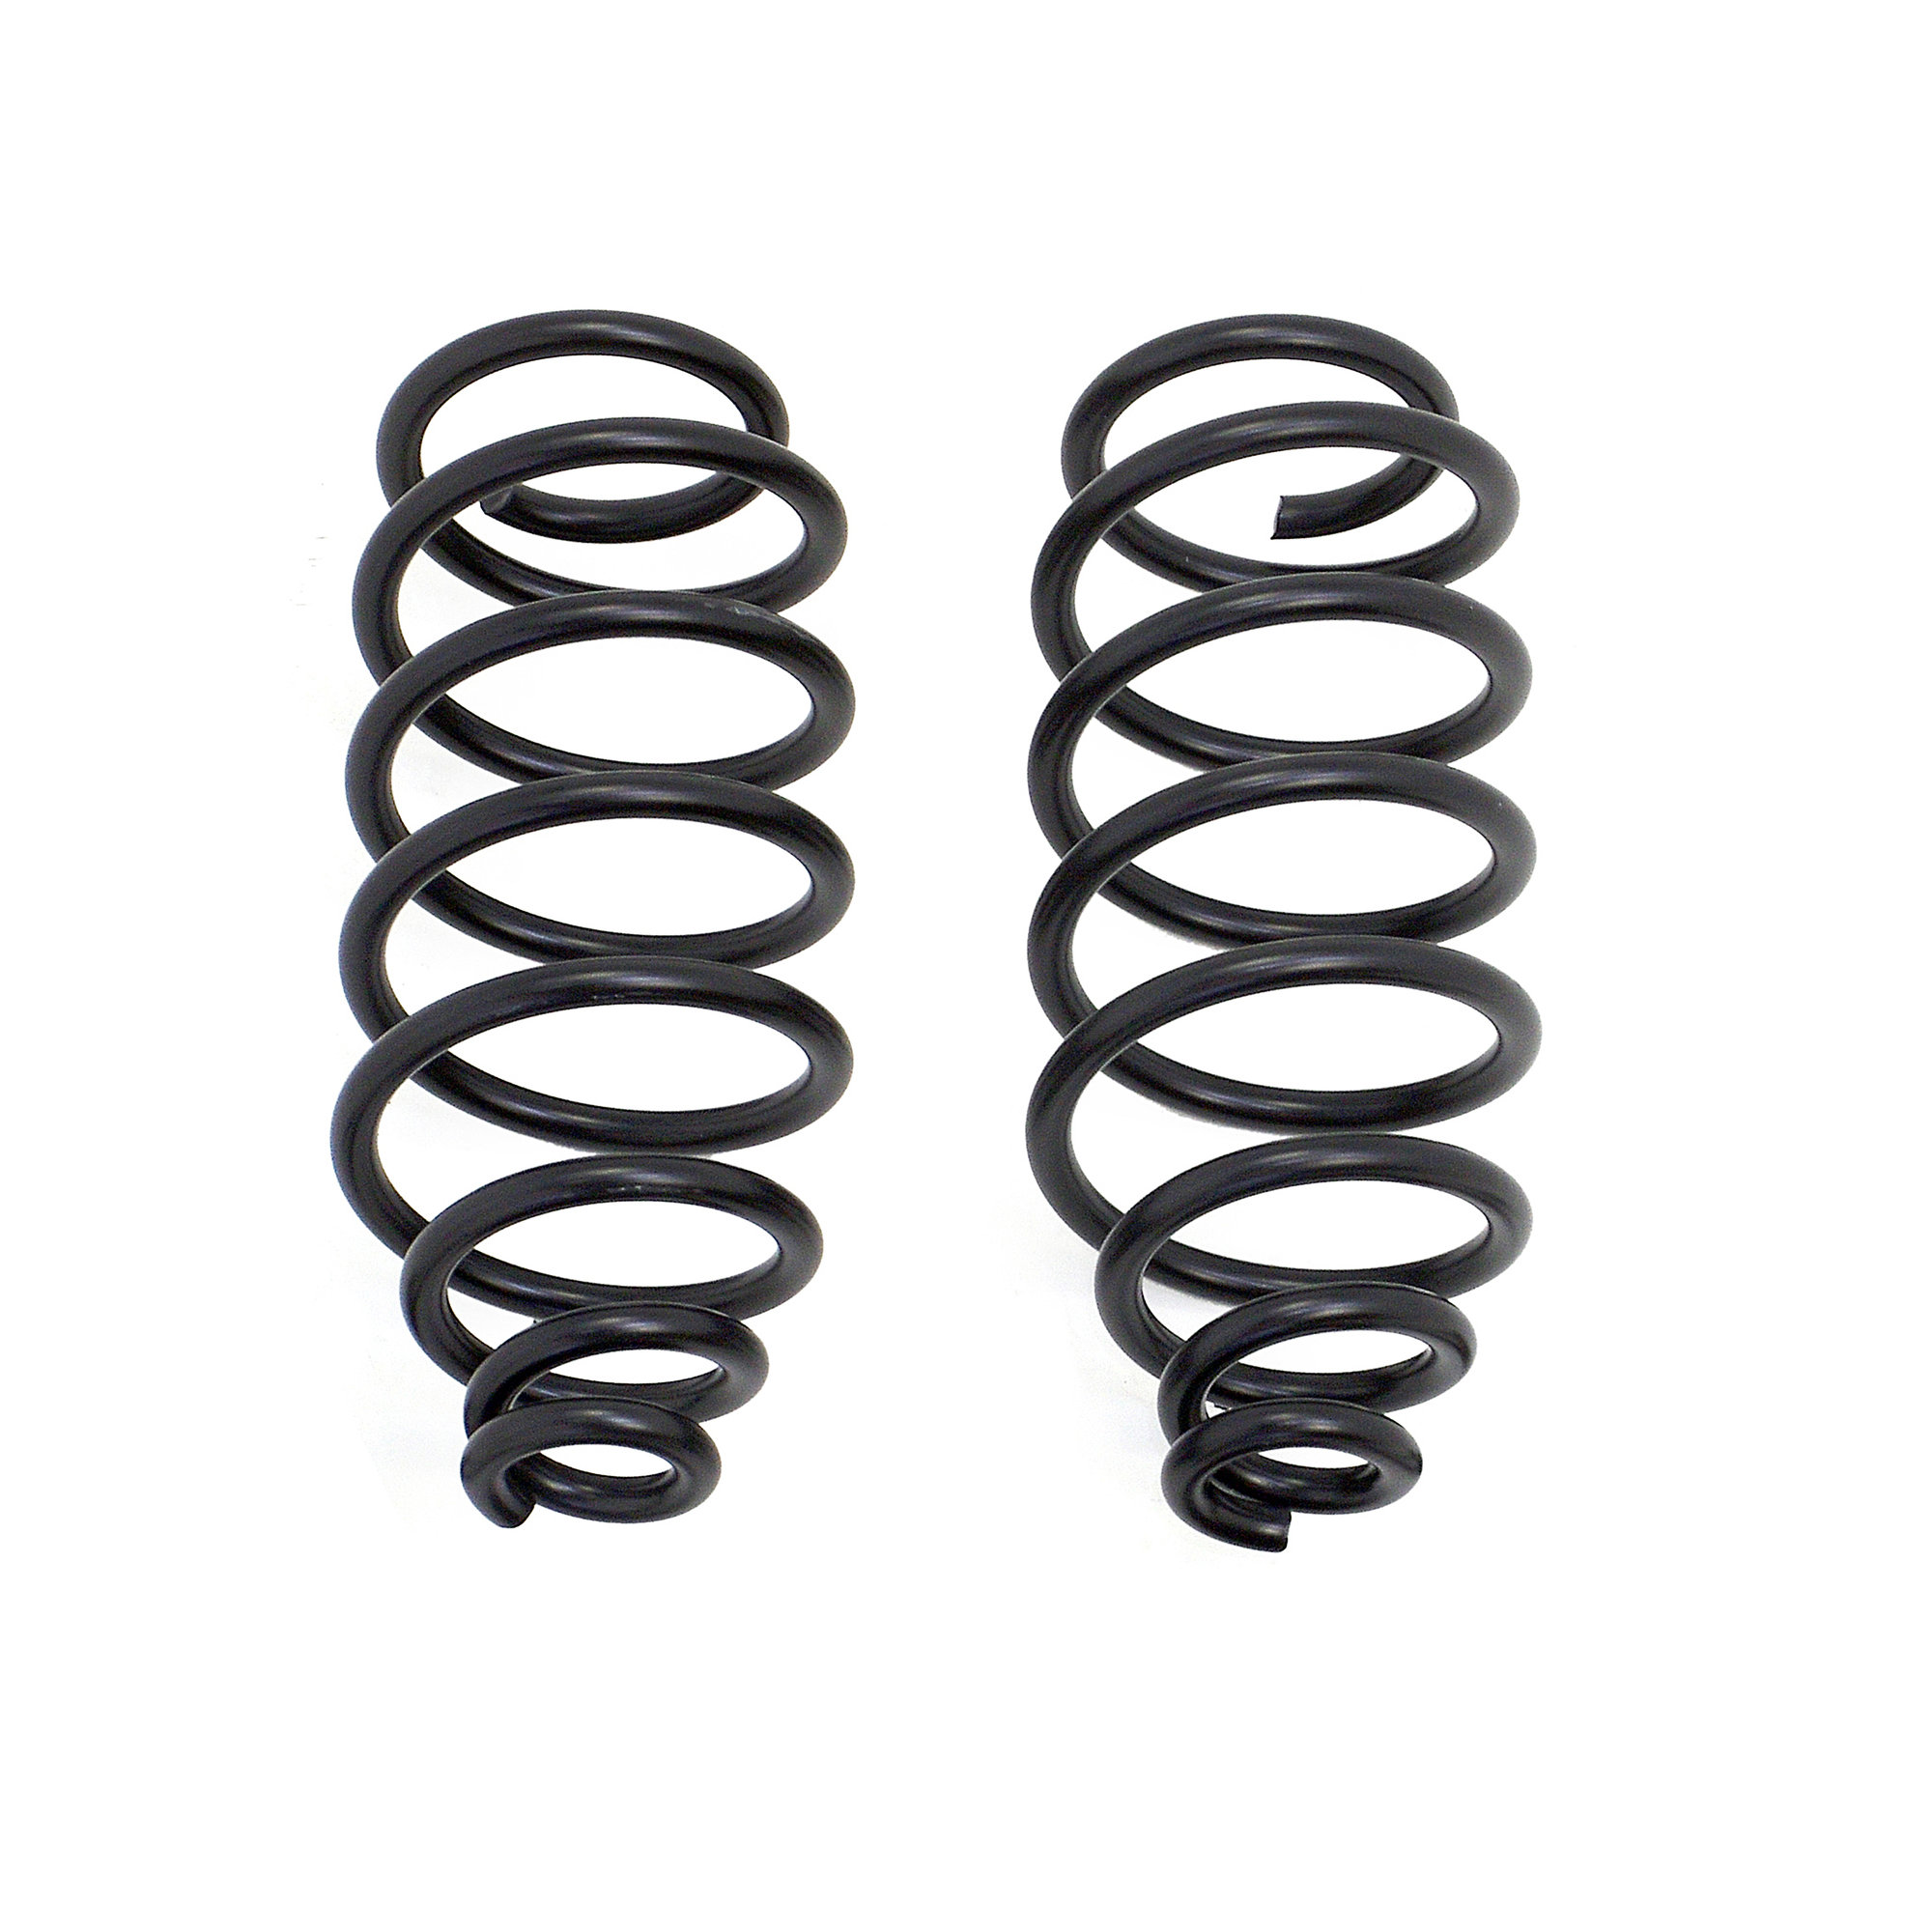 Readylift Suspension 47 R 2 5 Rear Spring Kit For 07